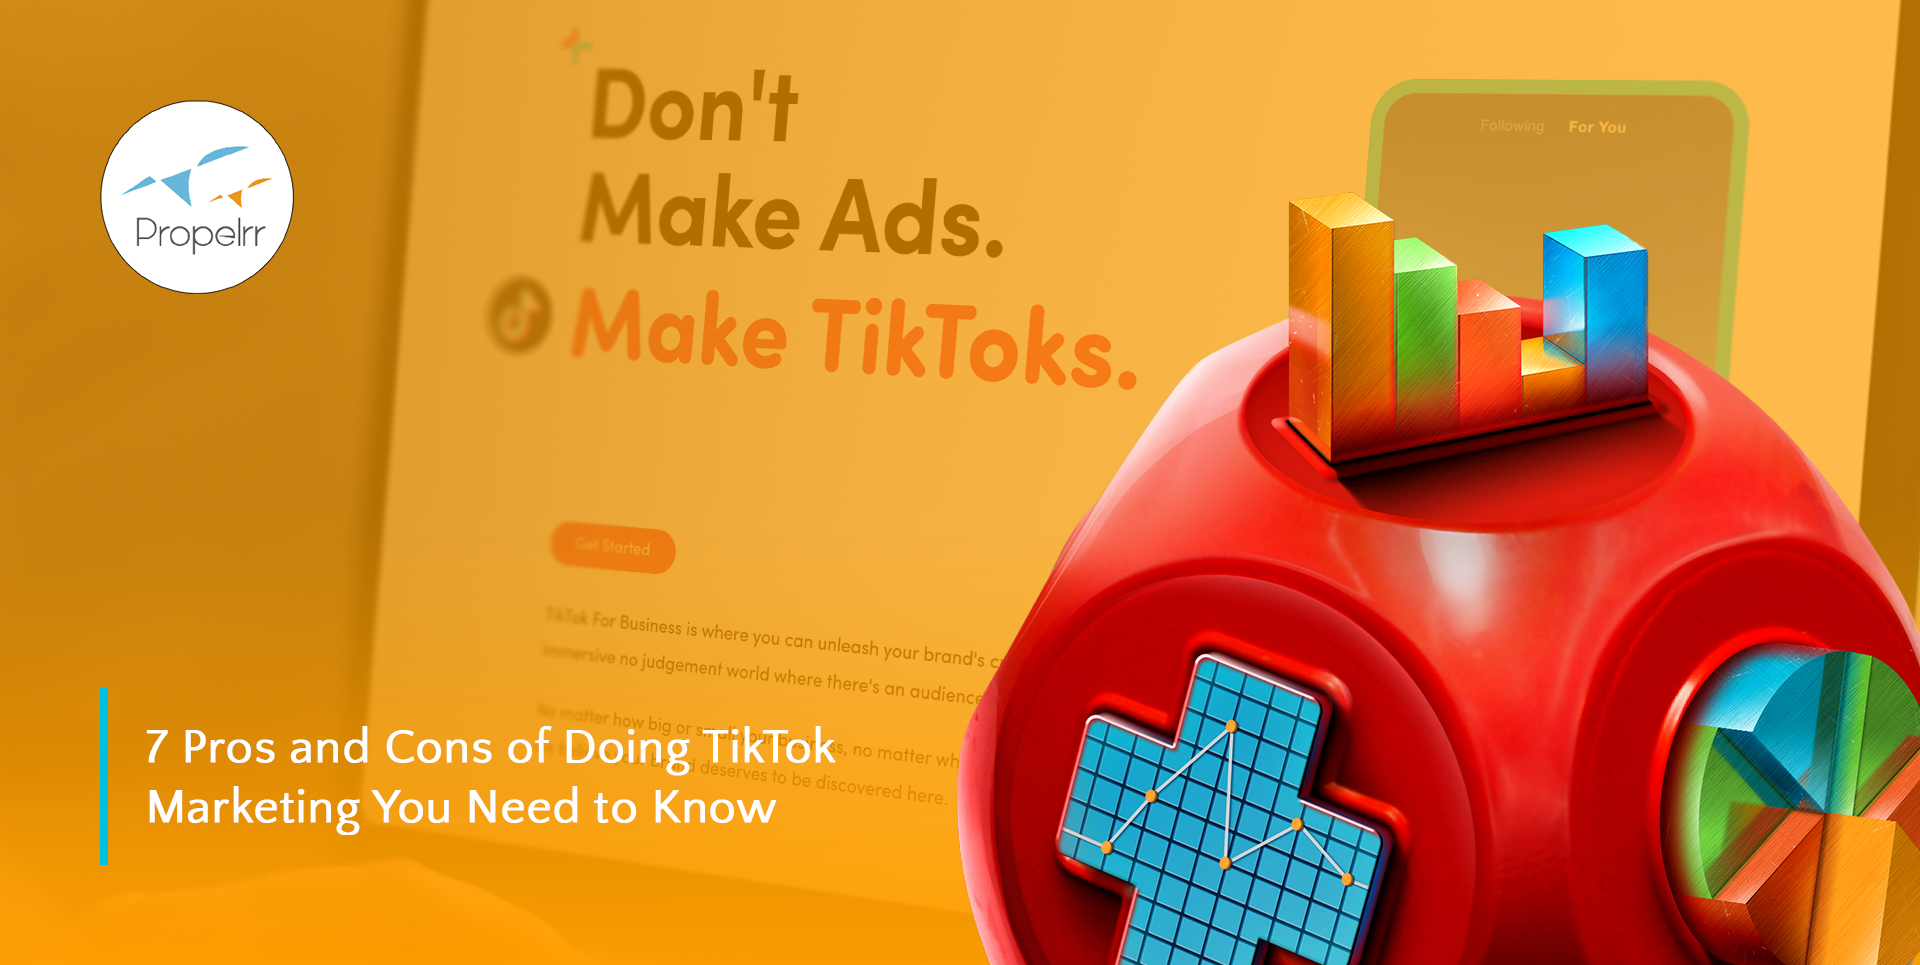 7 Pros and Cons of Doing TikTok Marketing You Need to Know